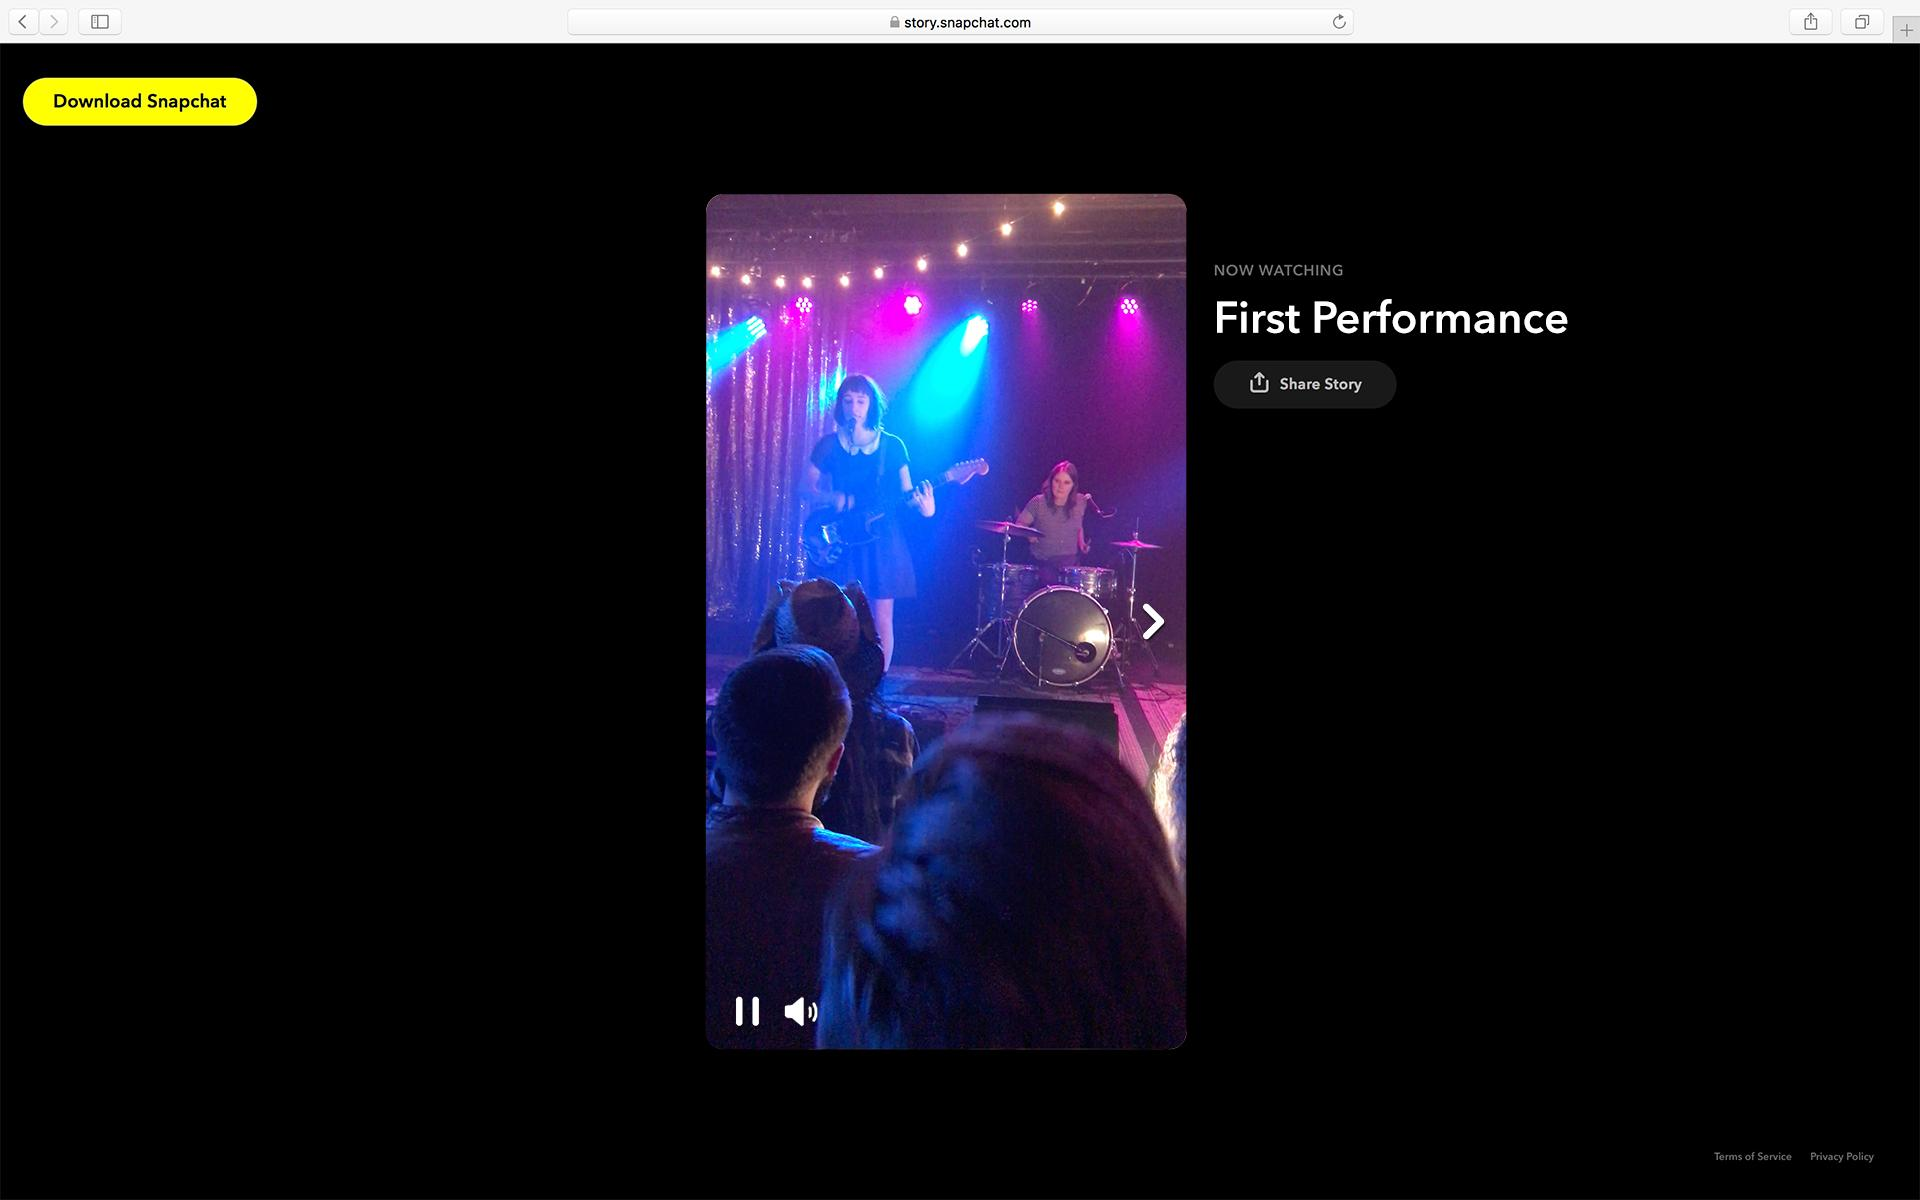 Concert Example share story snapchat